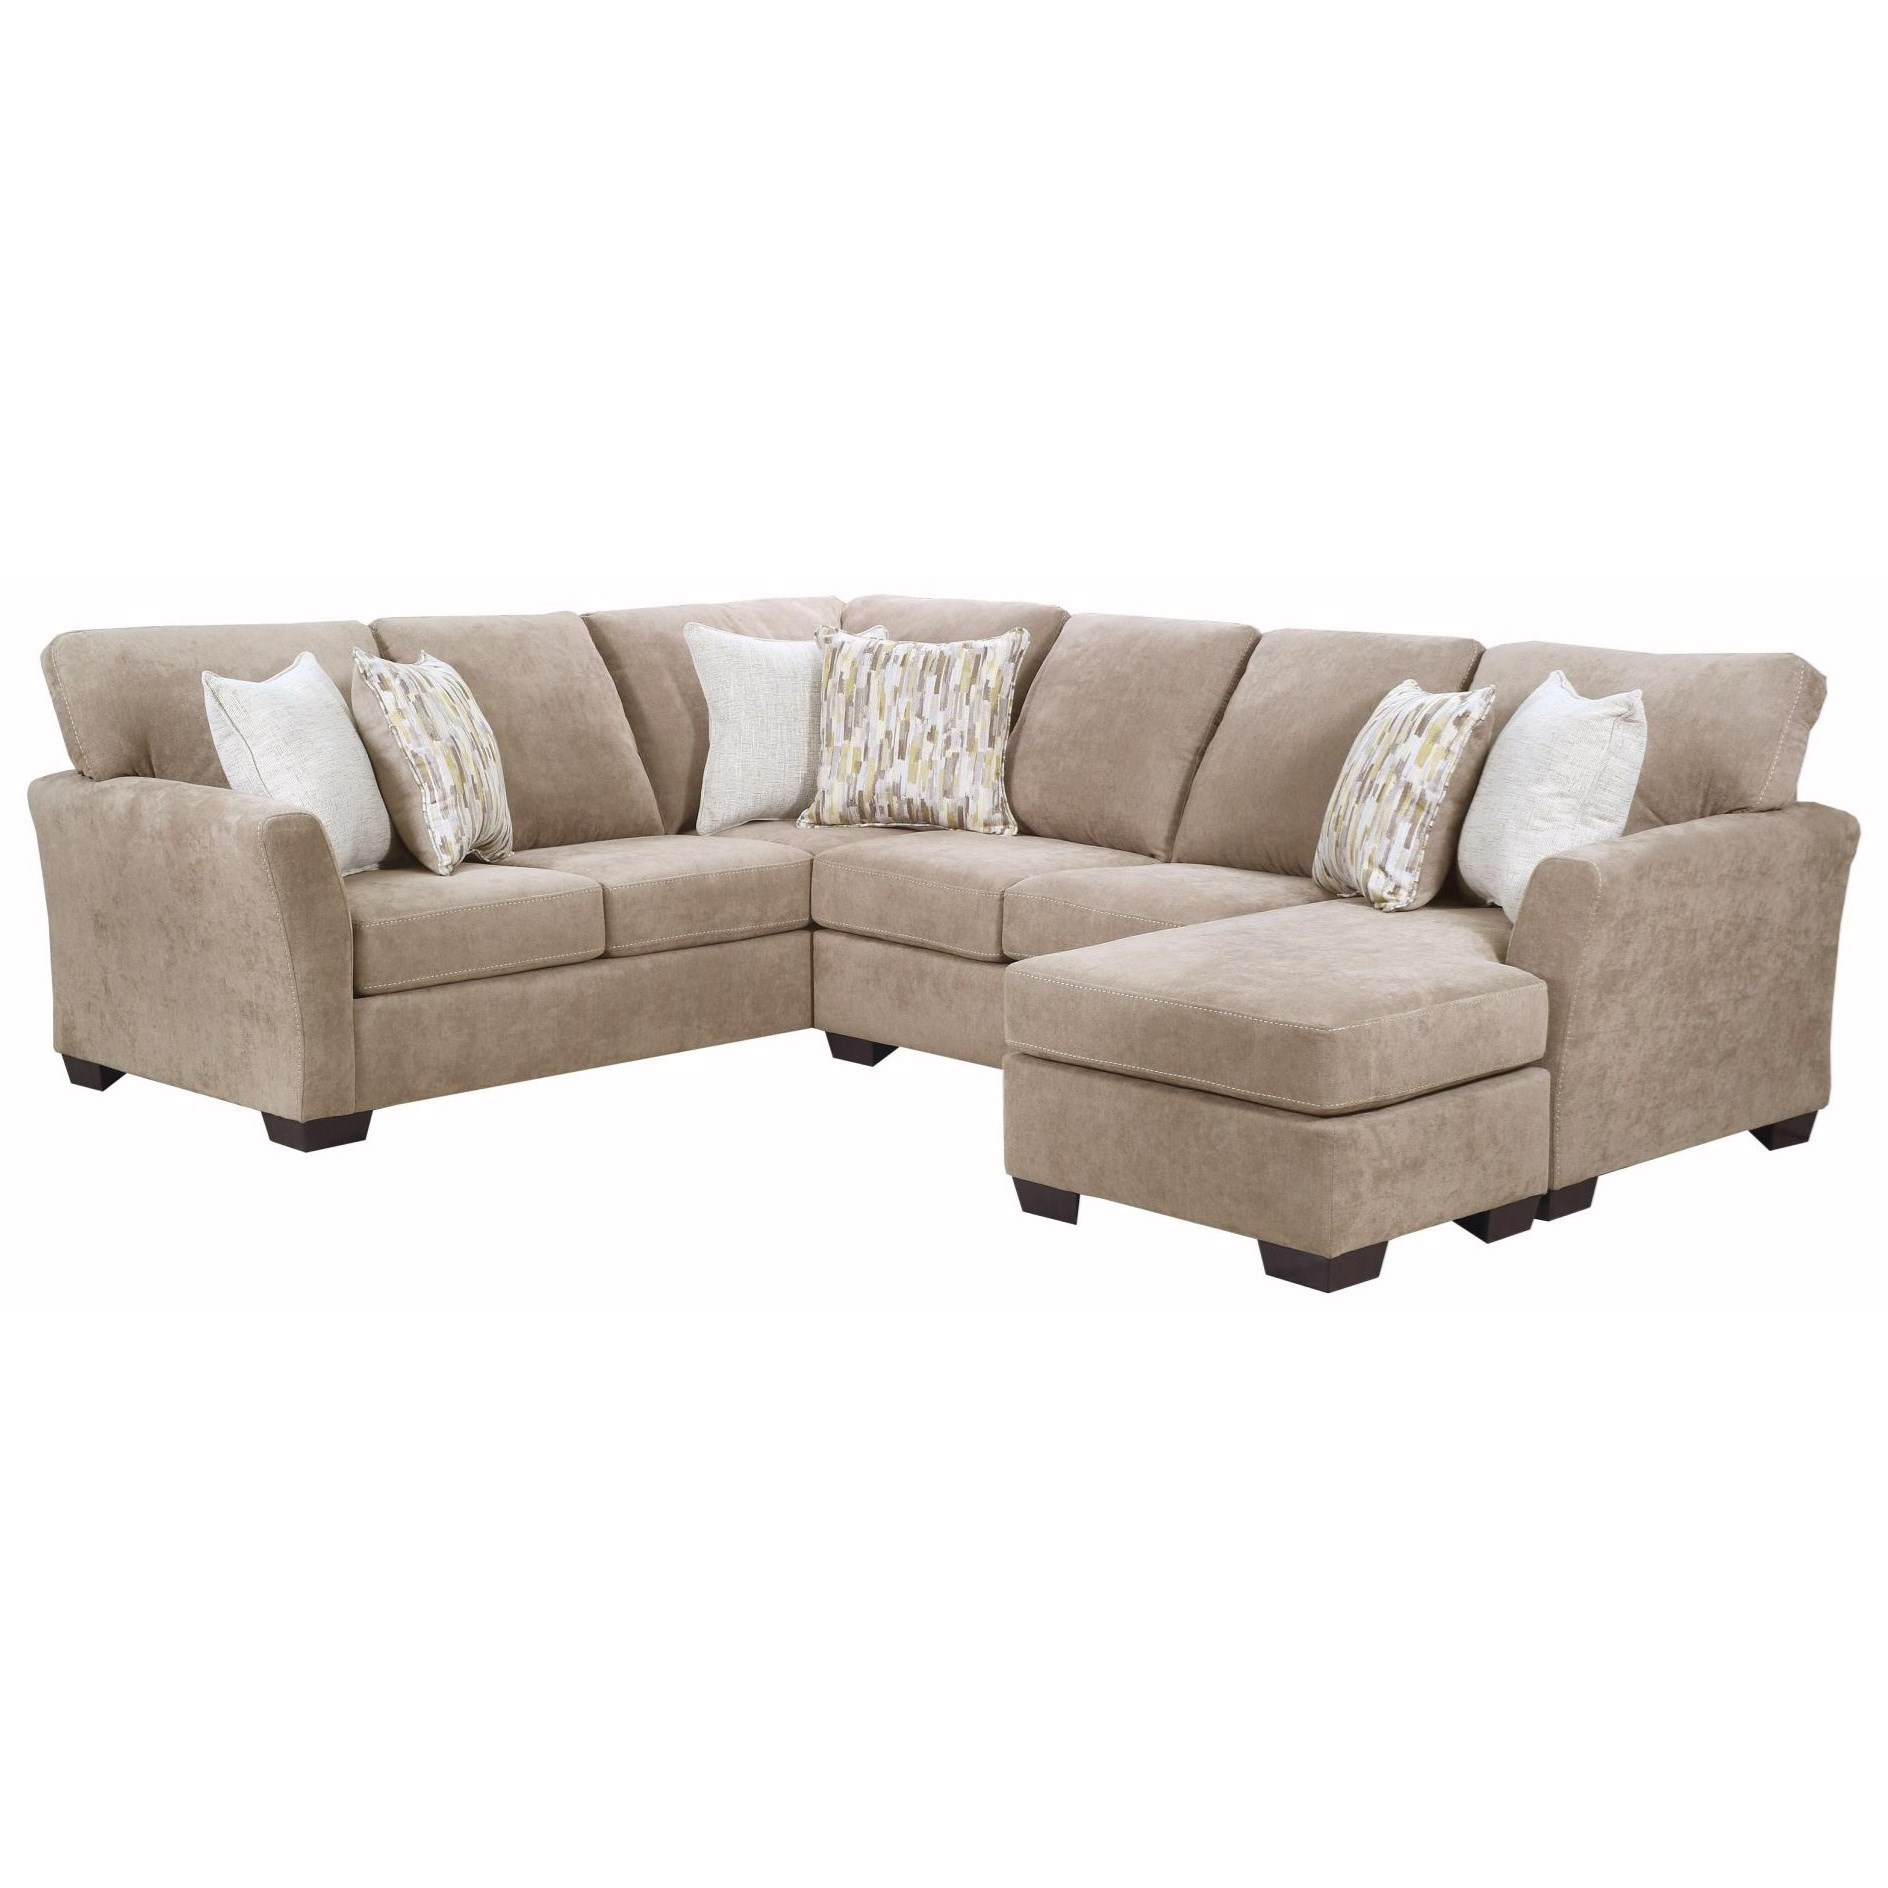 7058 2-Piece Sectional  by Lane at Esprit Decor Home Furnishings